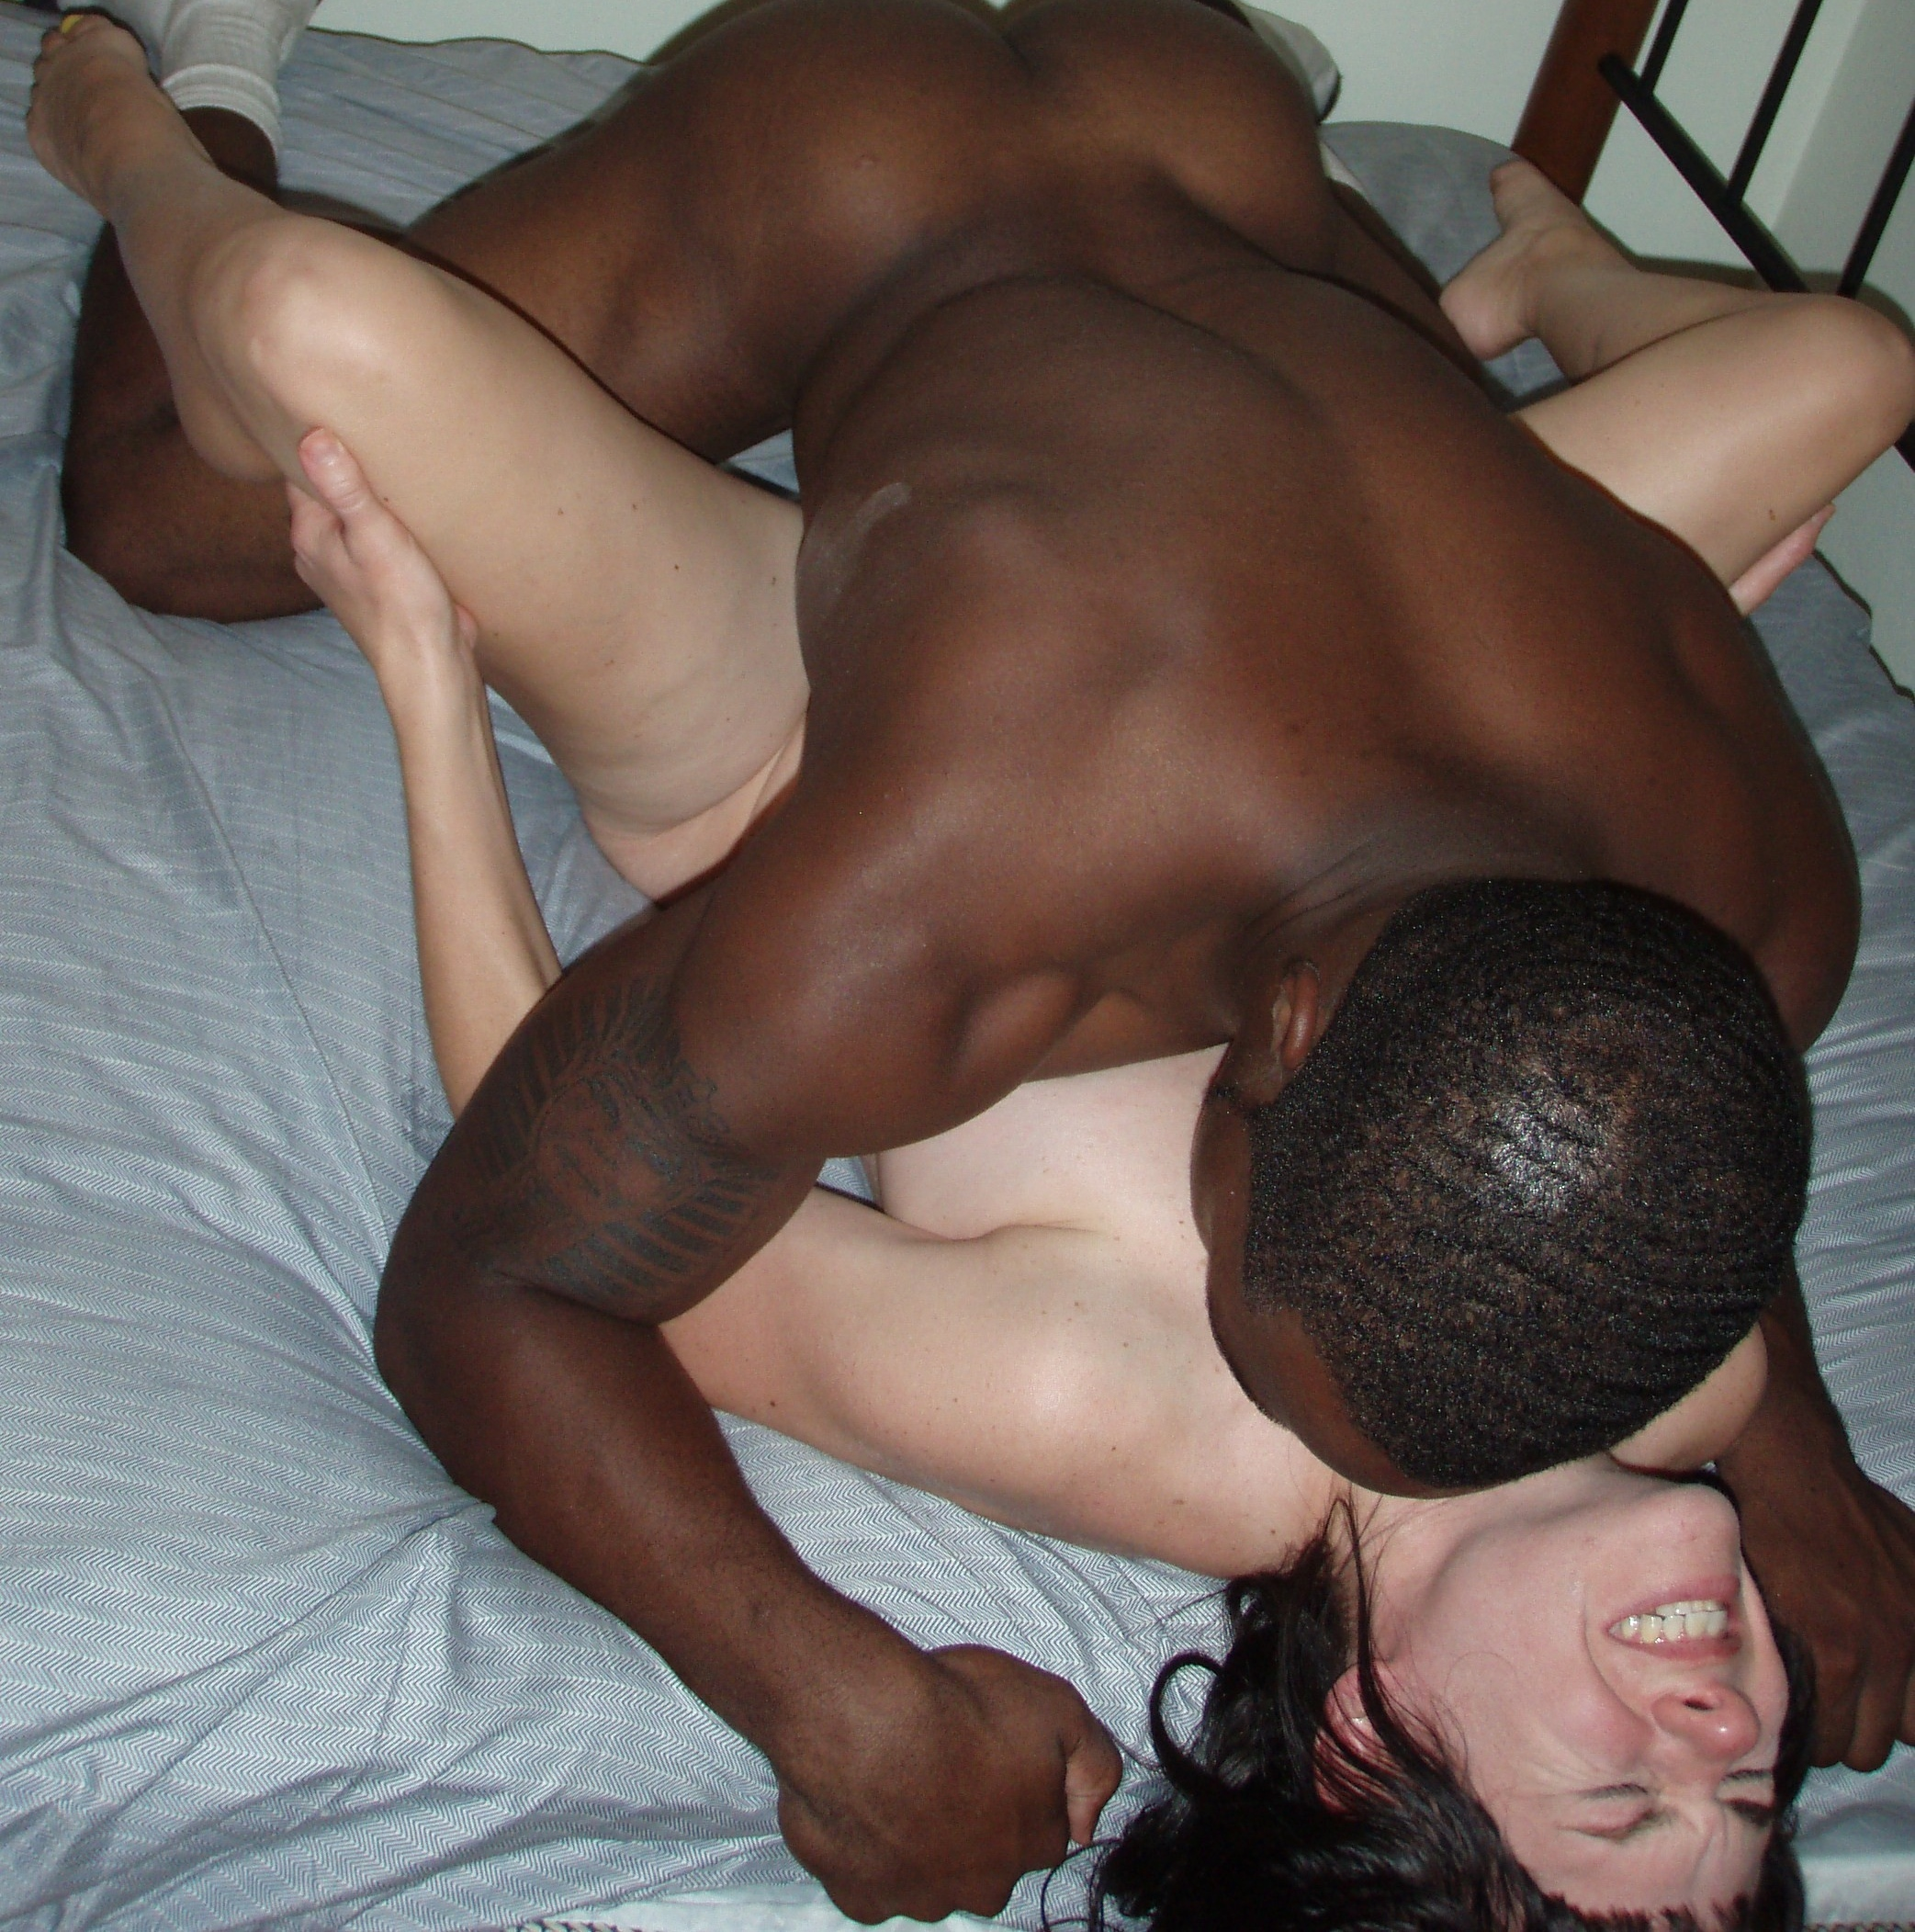 black cock white pussy Big Black Cocks in tight white sluts